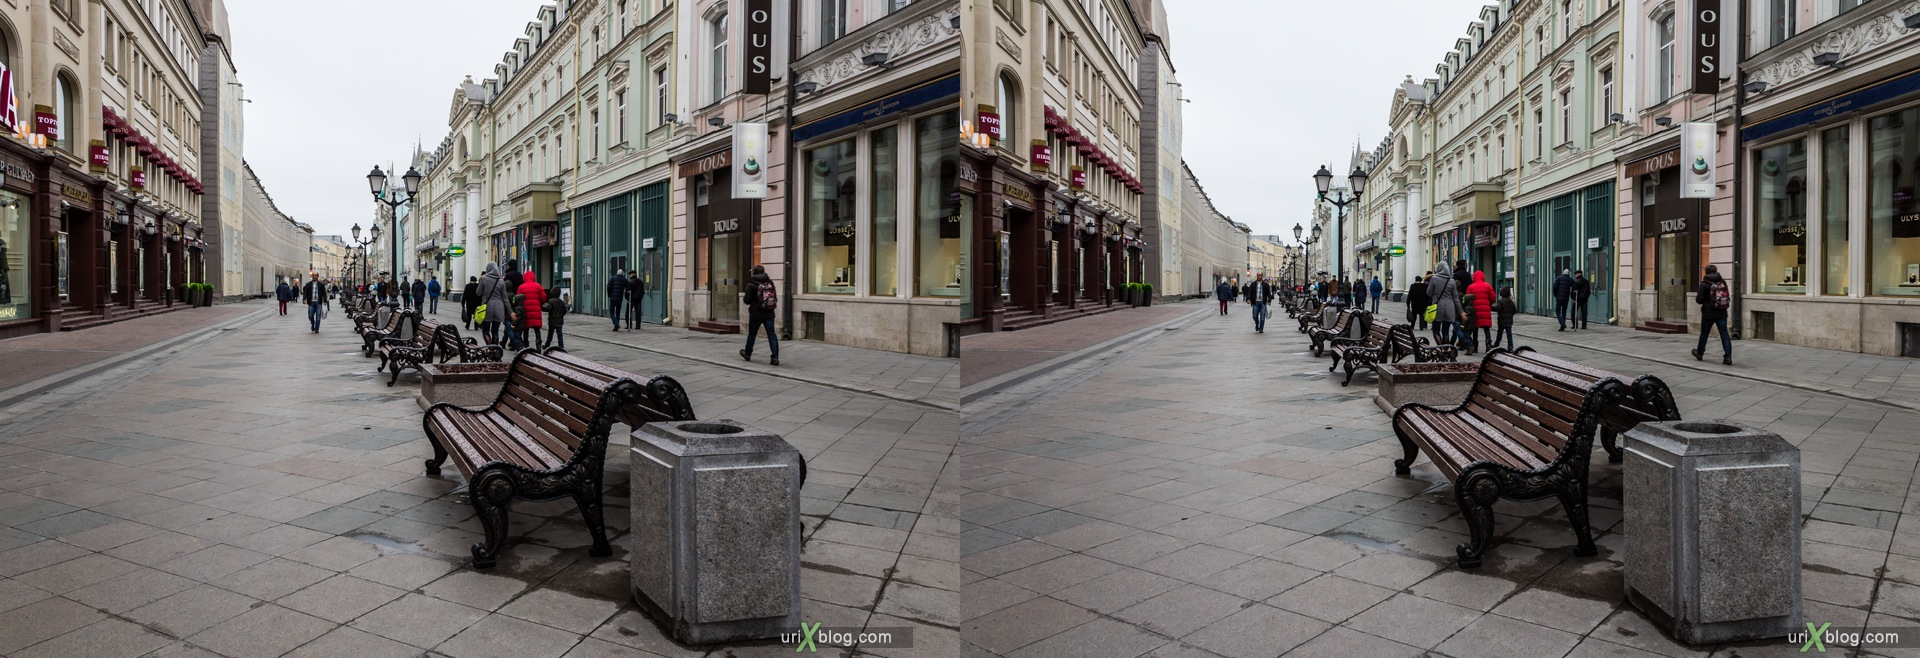 2013, Moscow, Russia, Nikolskaya, street, new pedestrian zone, 3D, stereo pair, cross-eyed, crossview, cross view stereo pair, stereoscopic